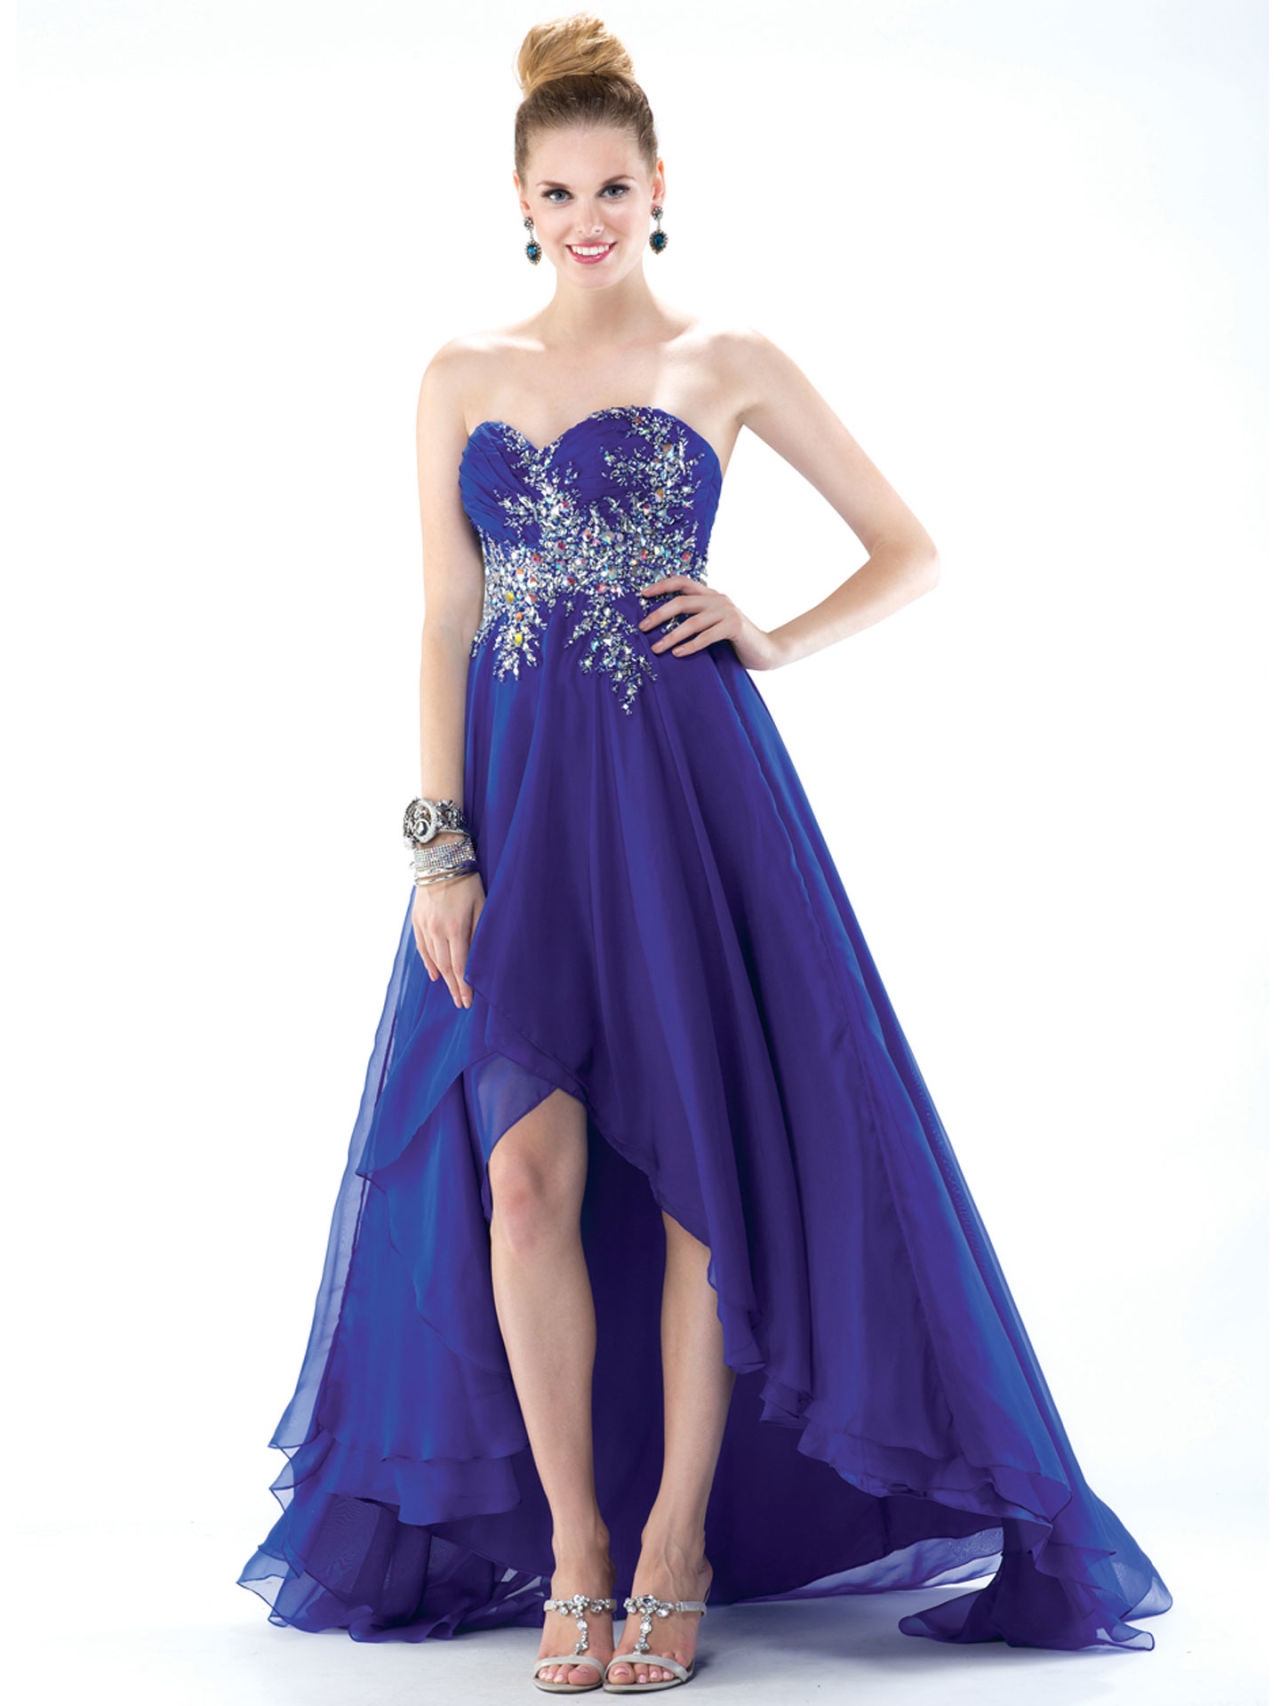 The Best Blue Prom Dresses - Prom Trends 2014